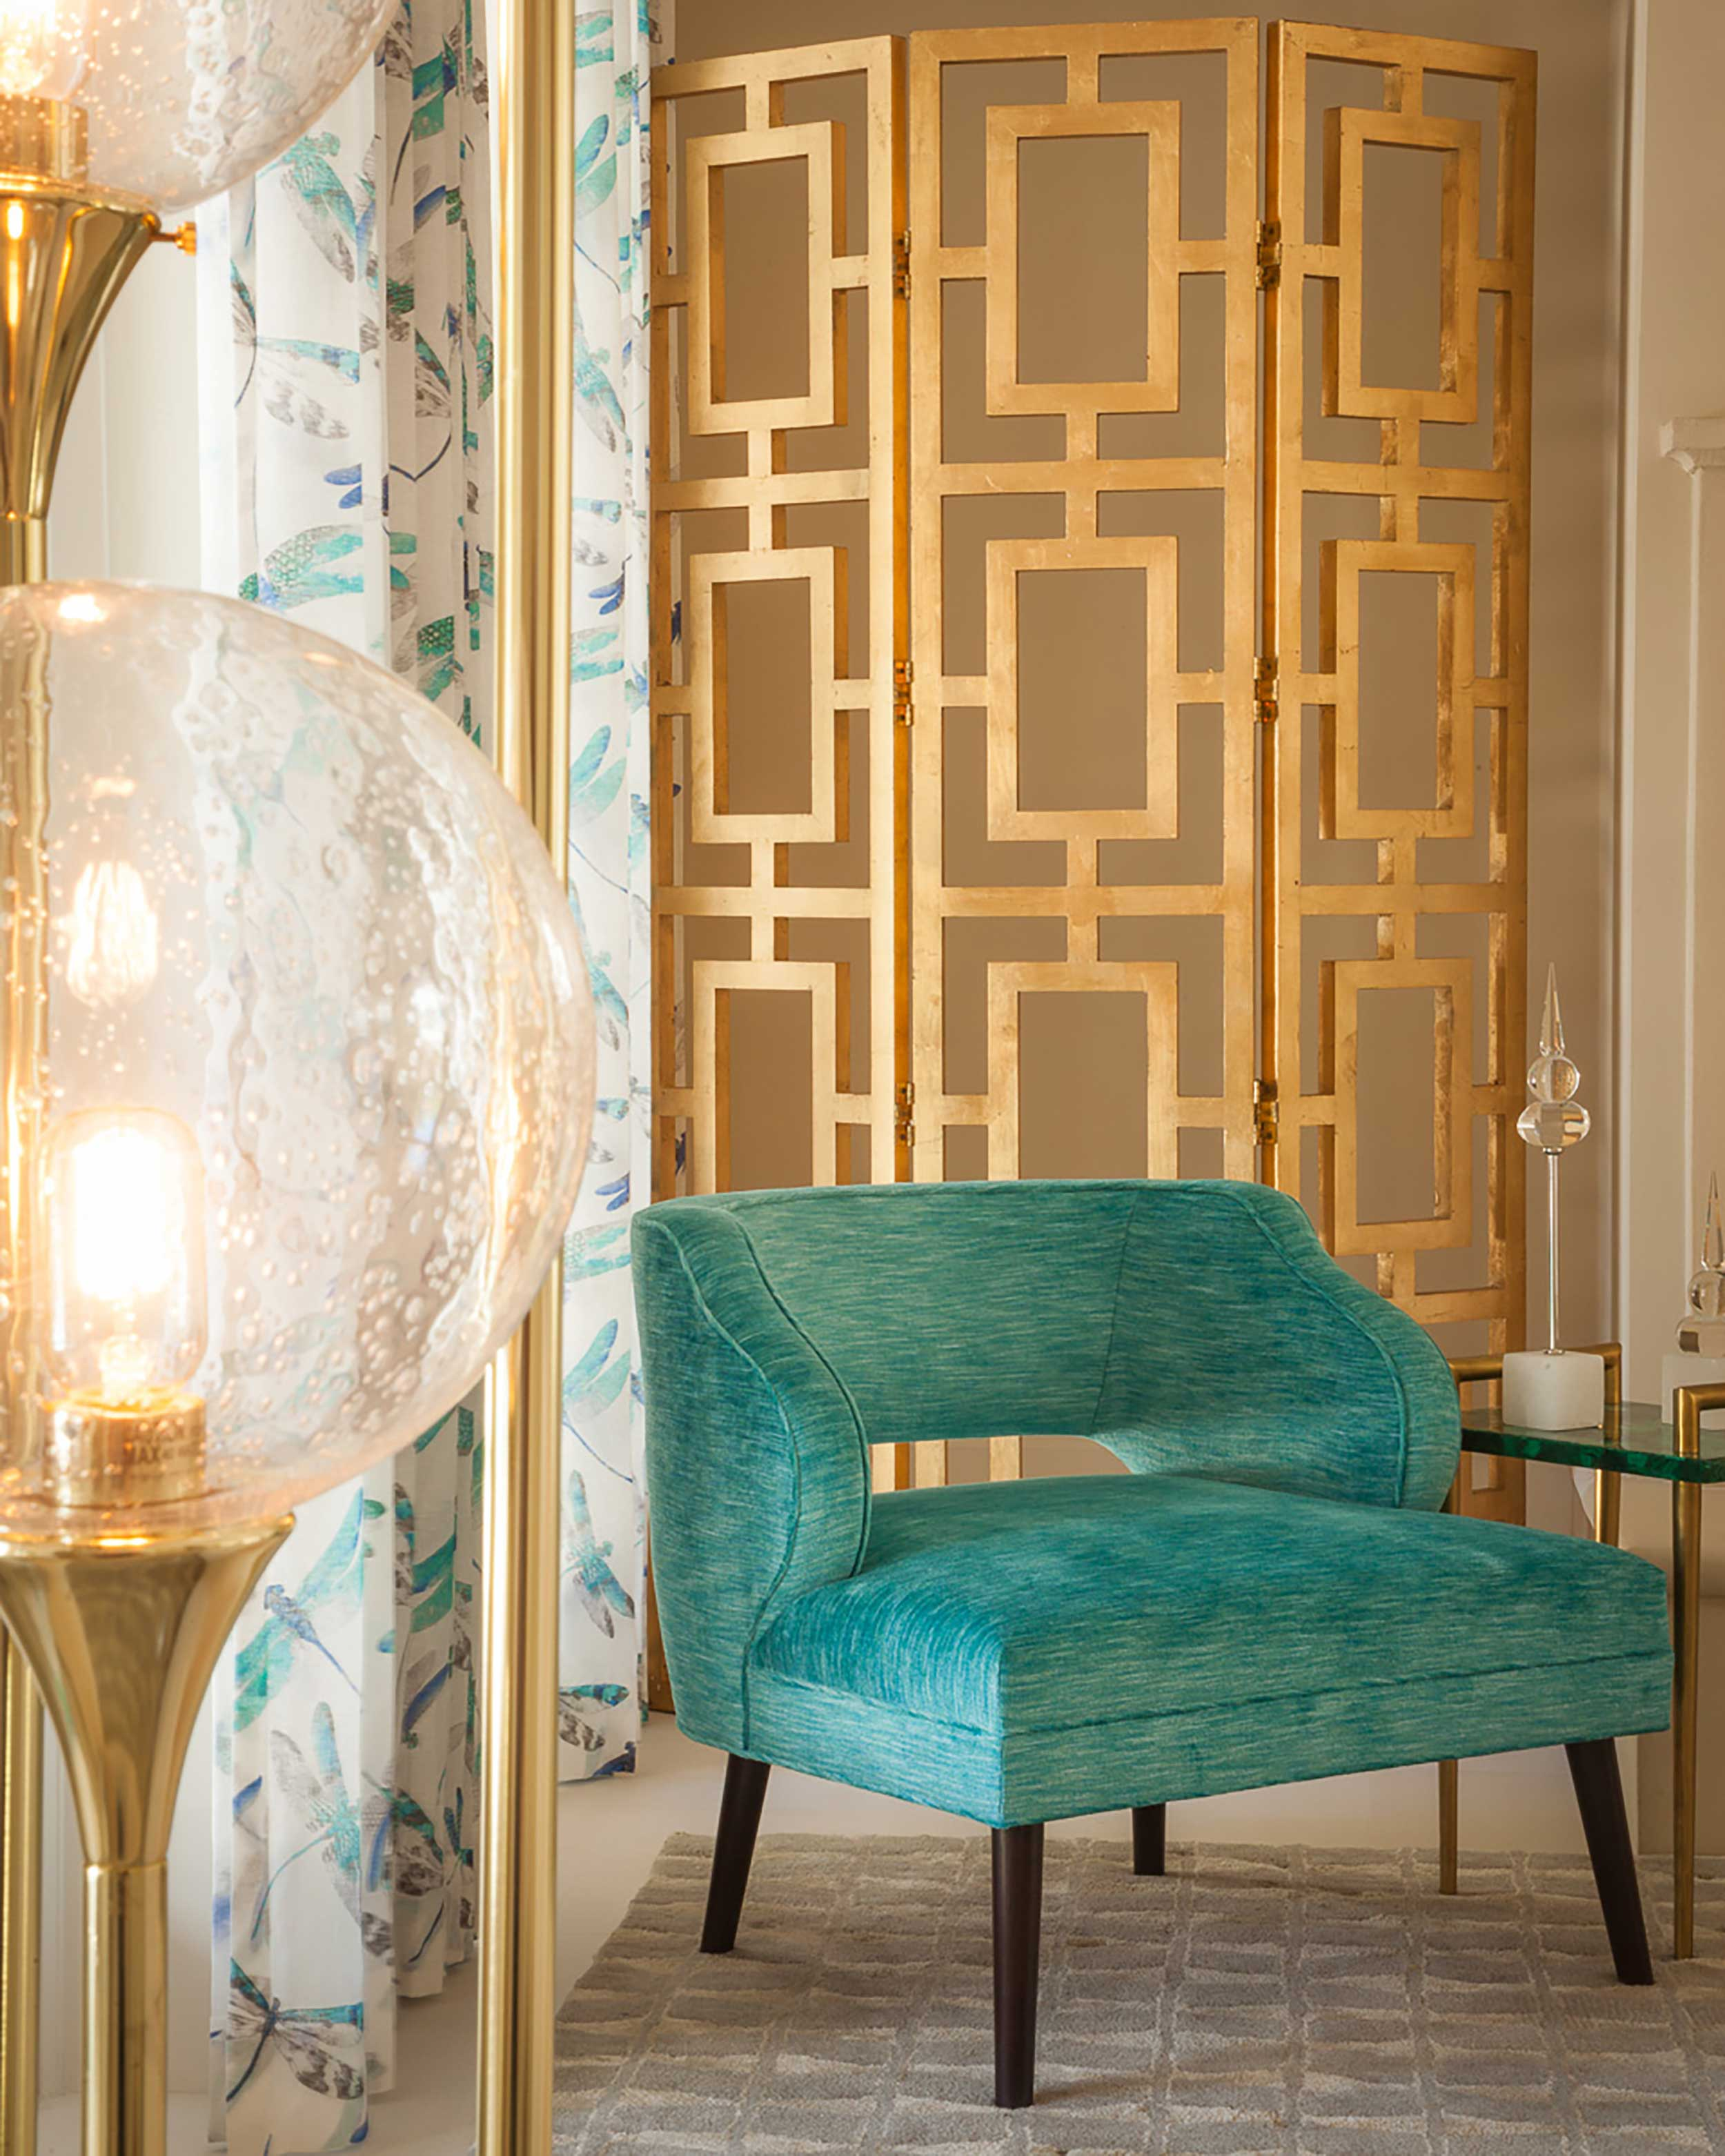 High end teal accent chair at in Boca Raton, FL